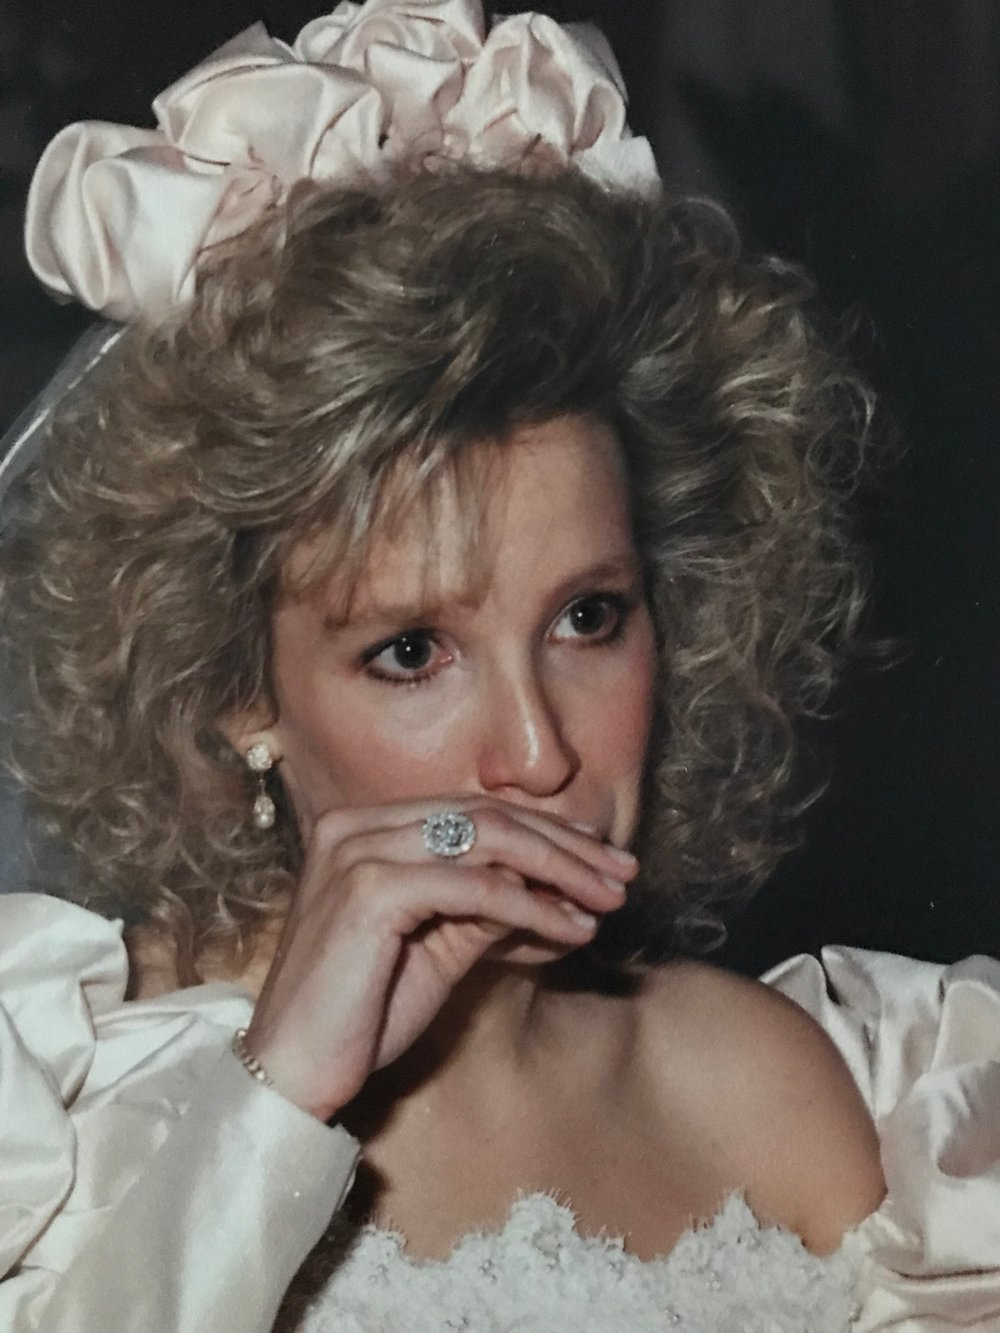 Jacqueline on her wedding day, wearing Yvonne's ring